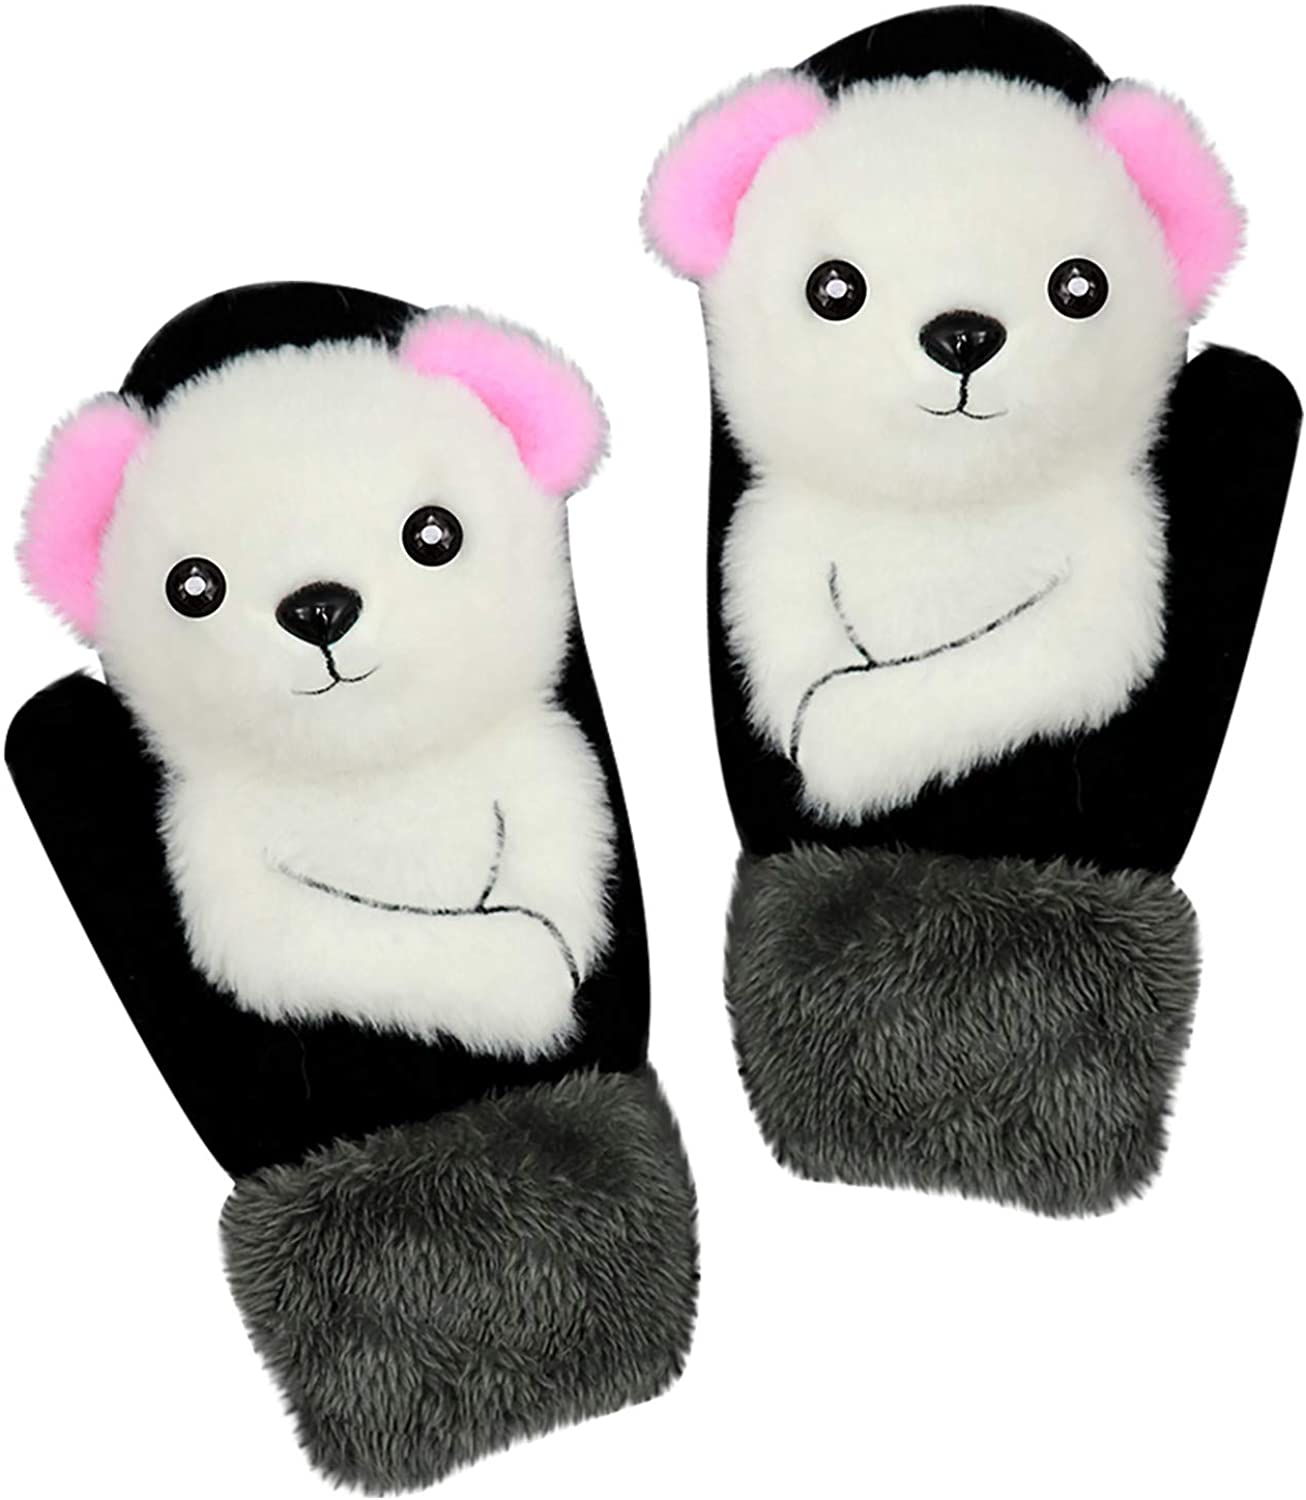 Women Knitted Plush Keeps Warm Gloves, Cartoon Animal Knitted Gloves Mittens for Autumn Winter